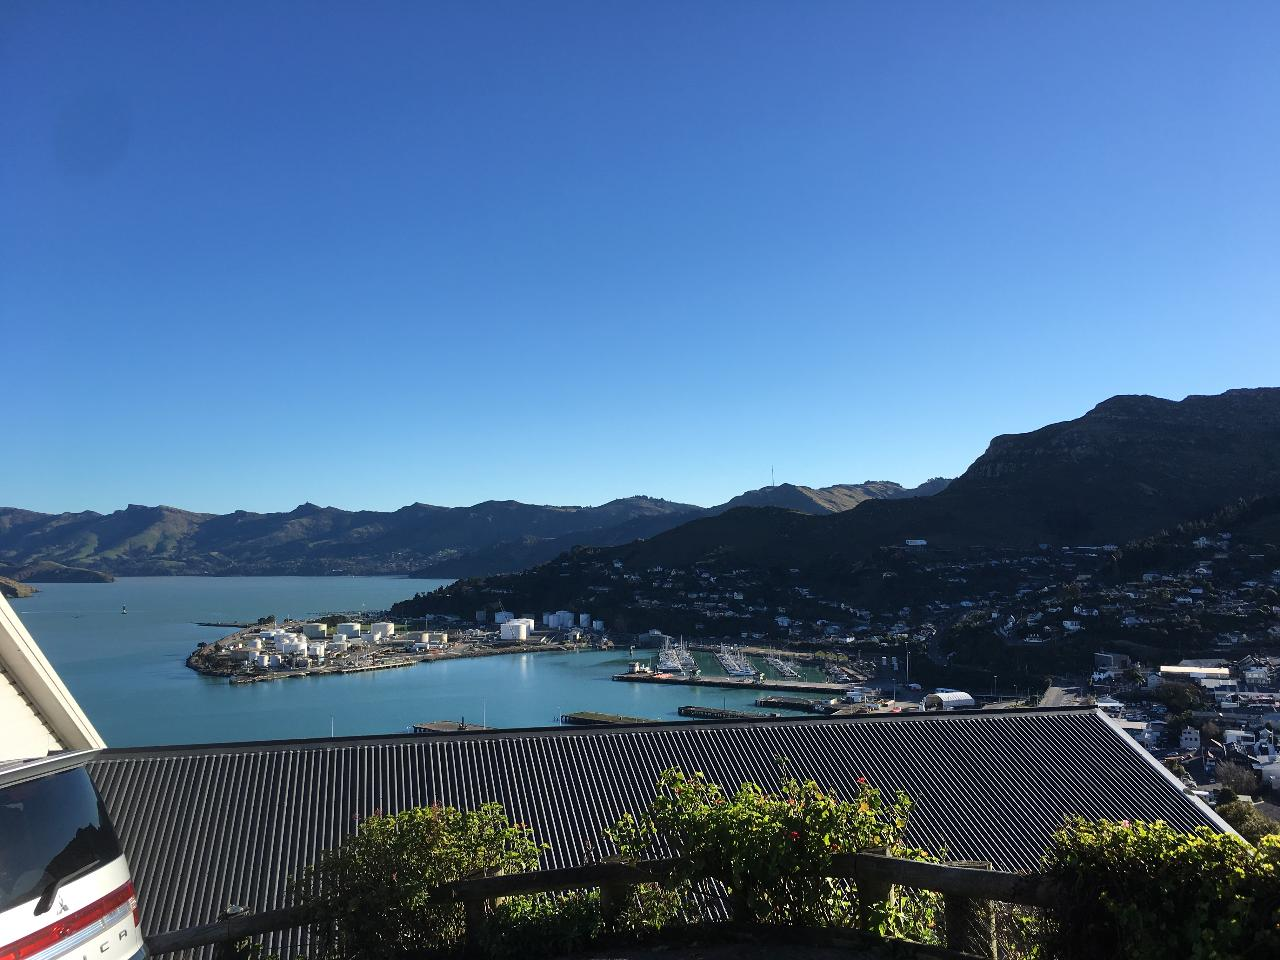 Our Highlights Tour - Christchurch CBD, Cashmere, Lyttelton, Seaside Suburbs PLUS the amazing Gondola views - 4 hrs